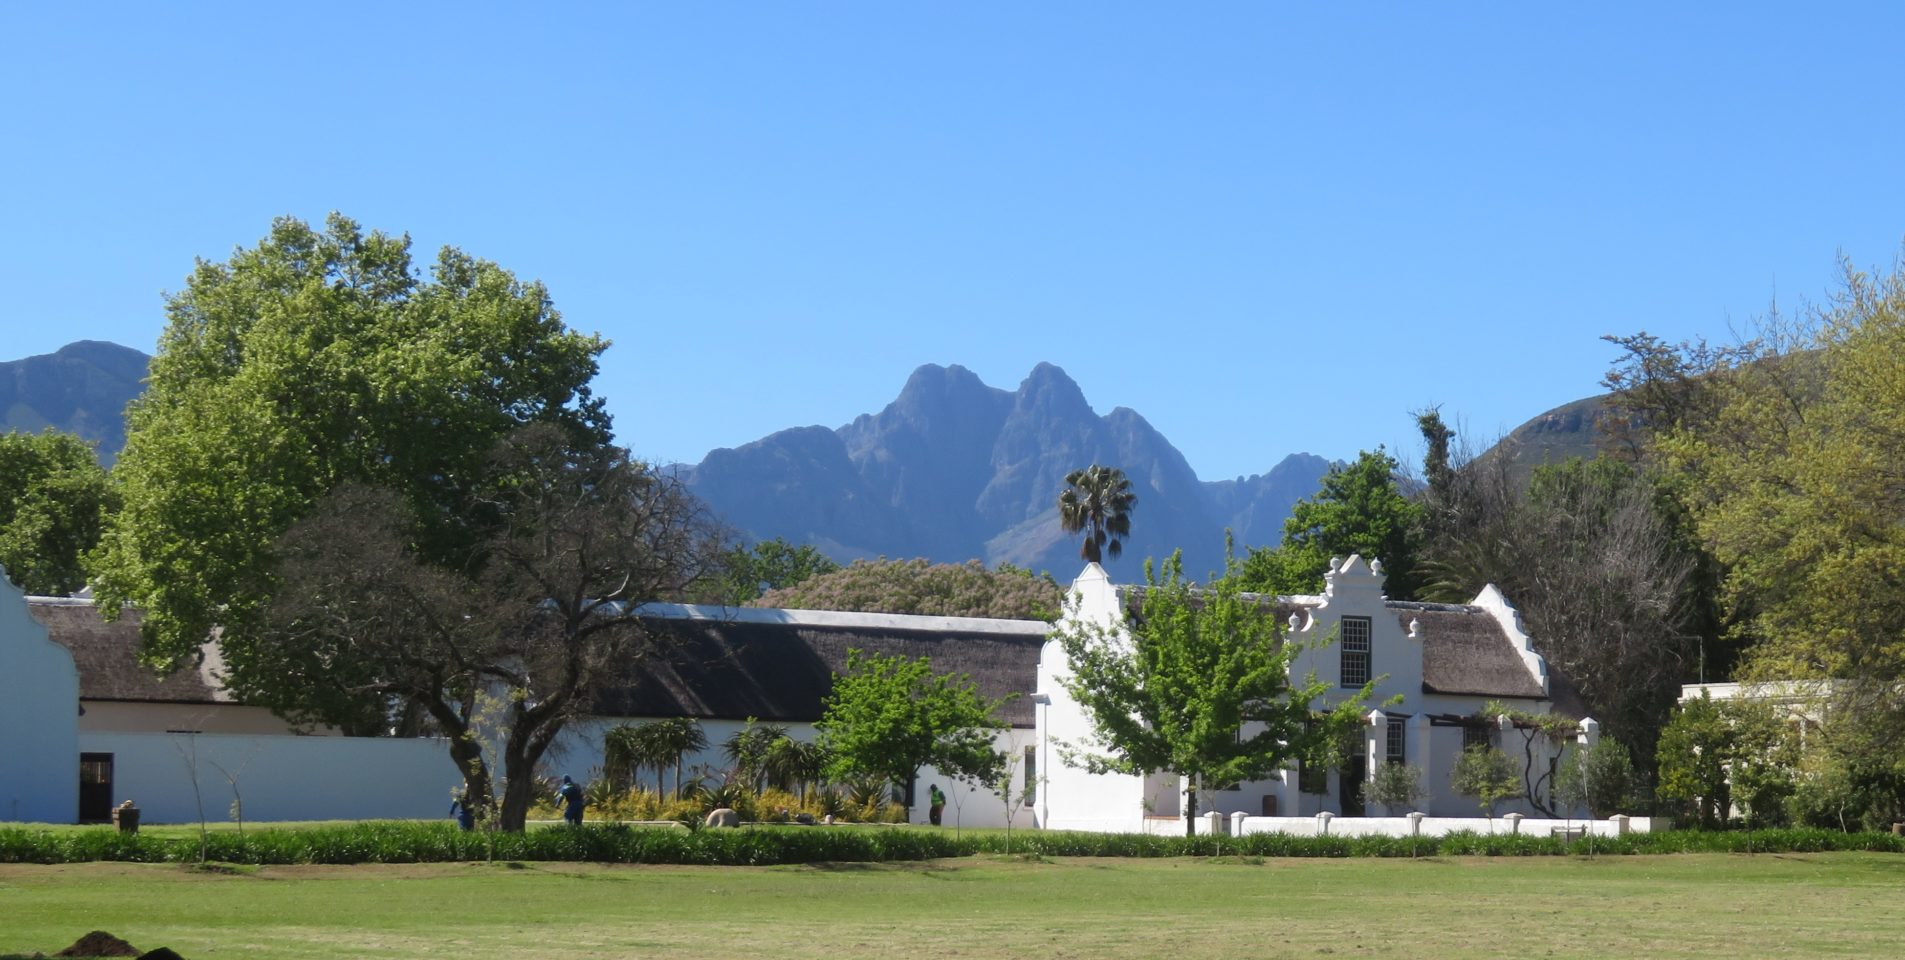 Town of Stellenbosch, South Africa